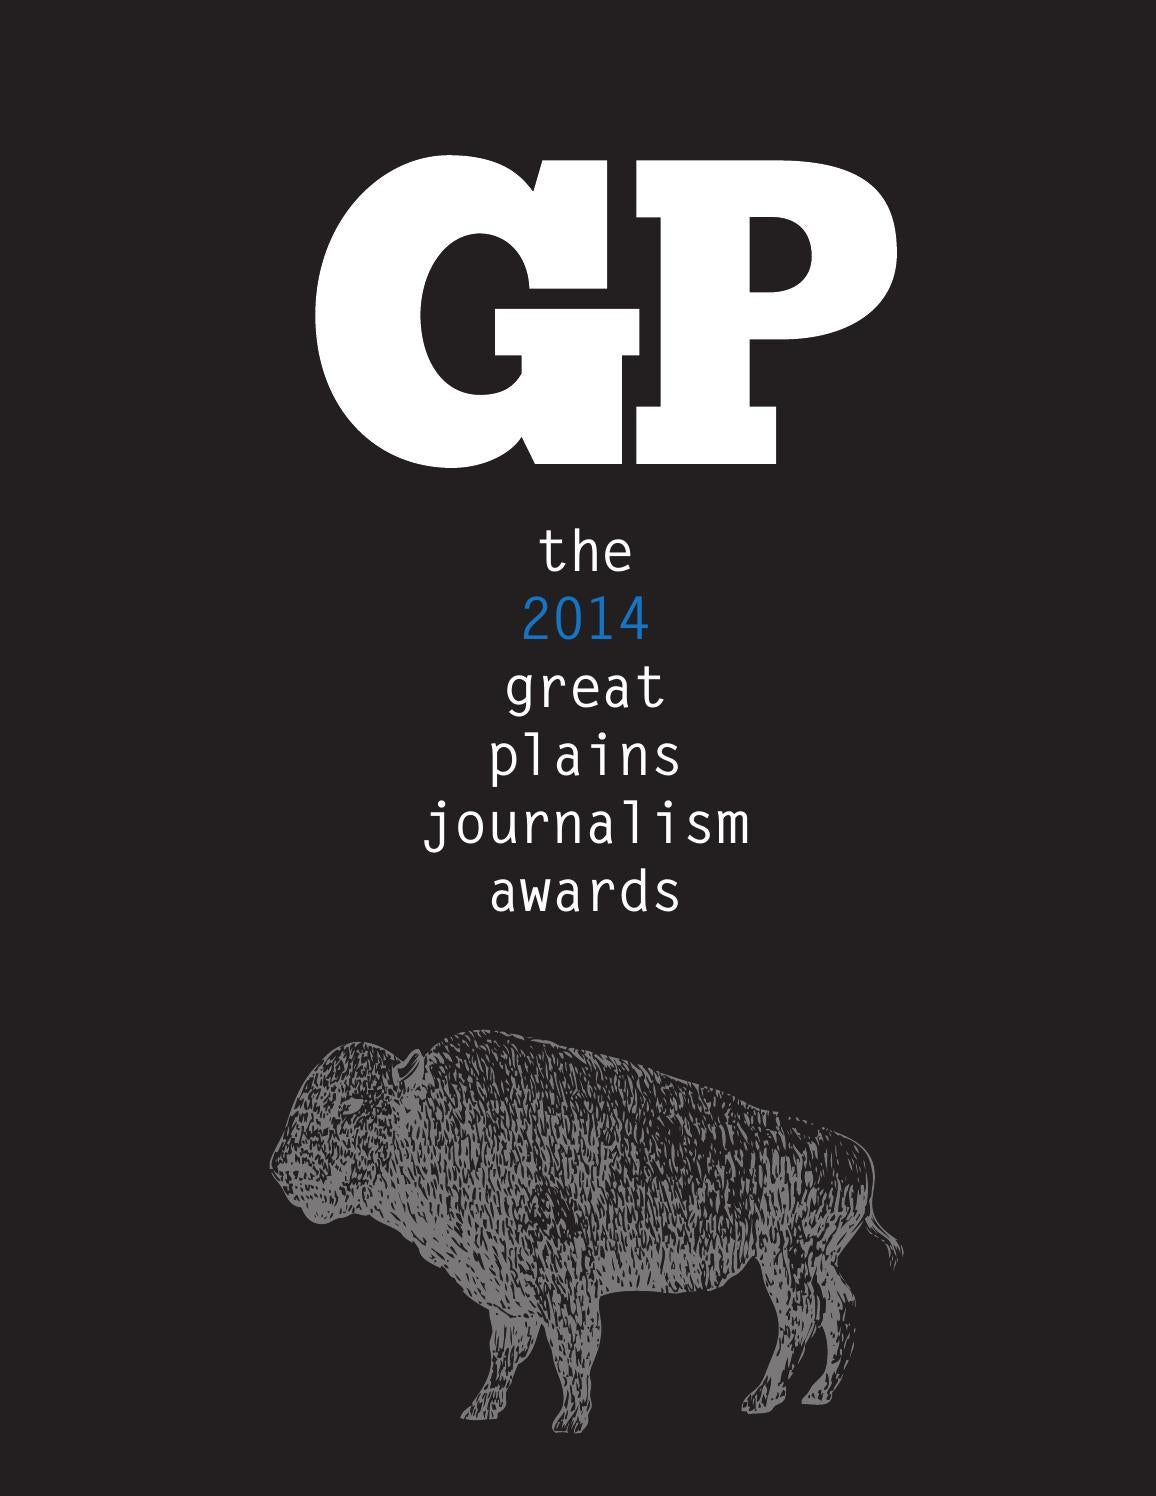 Great Plains Journalism Awards 2014 by